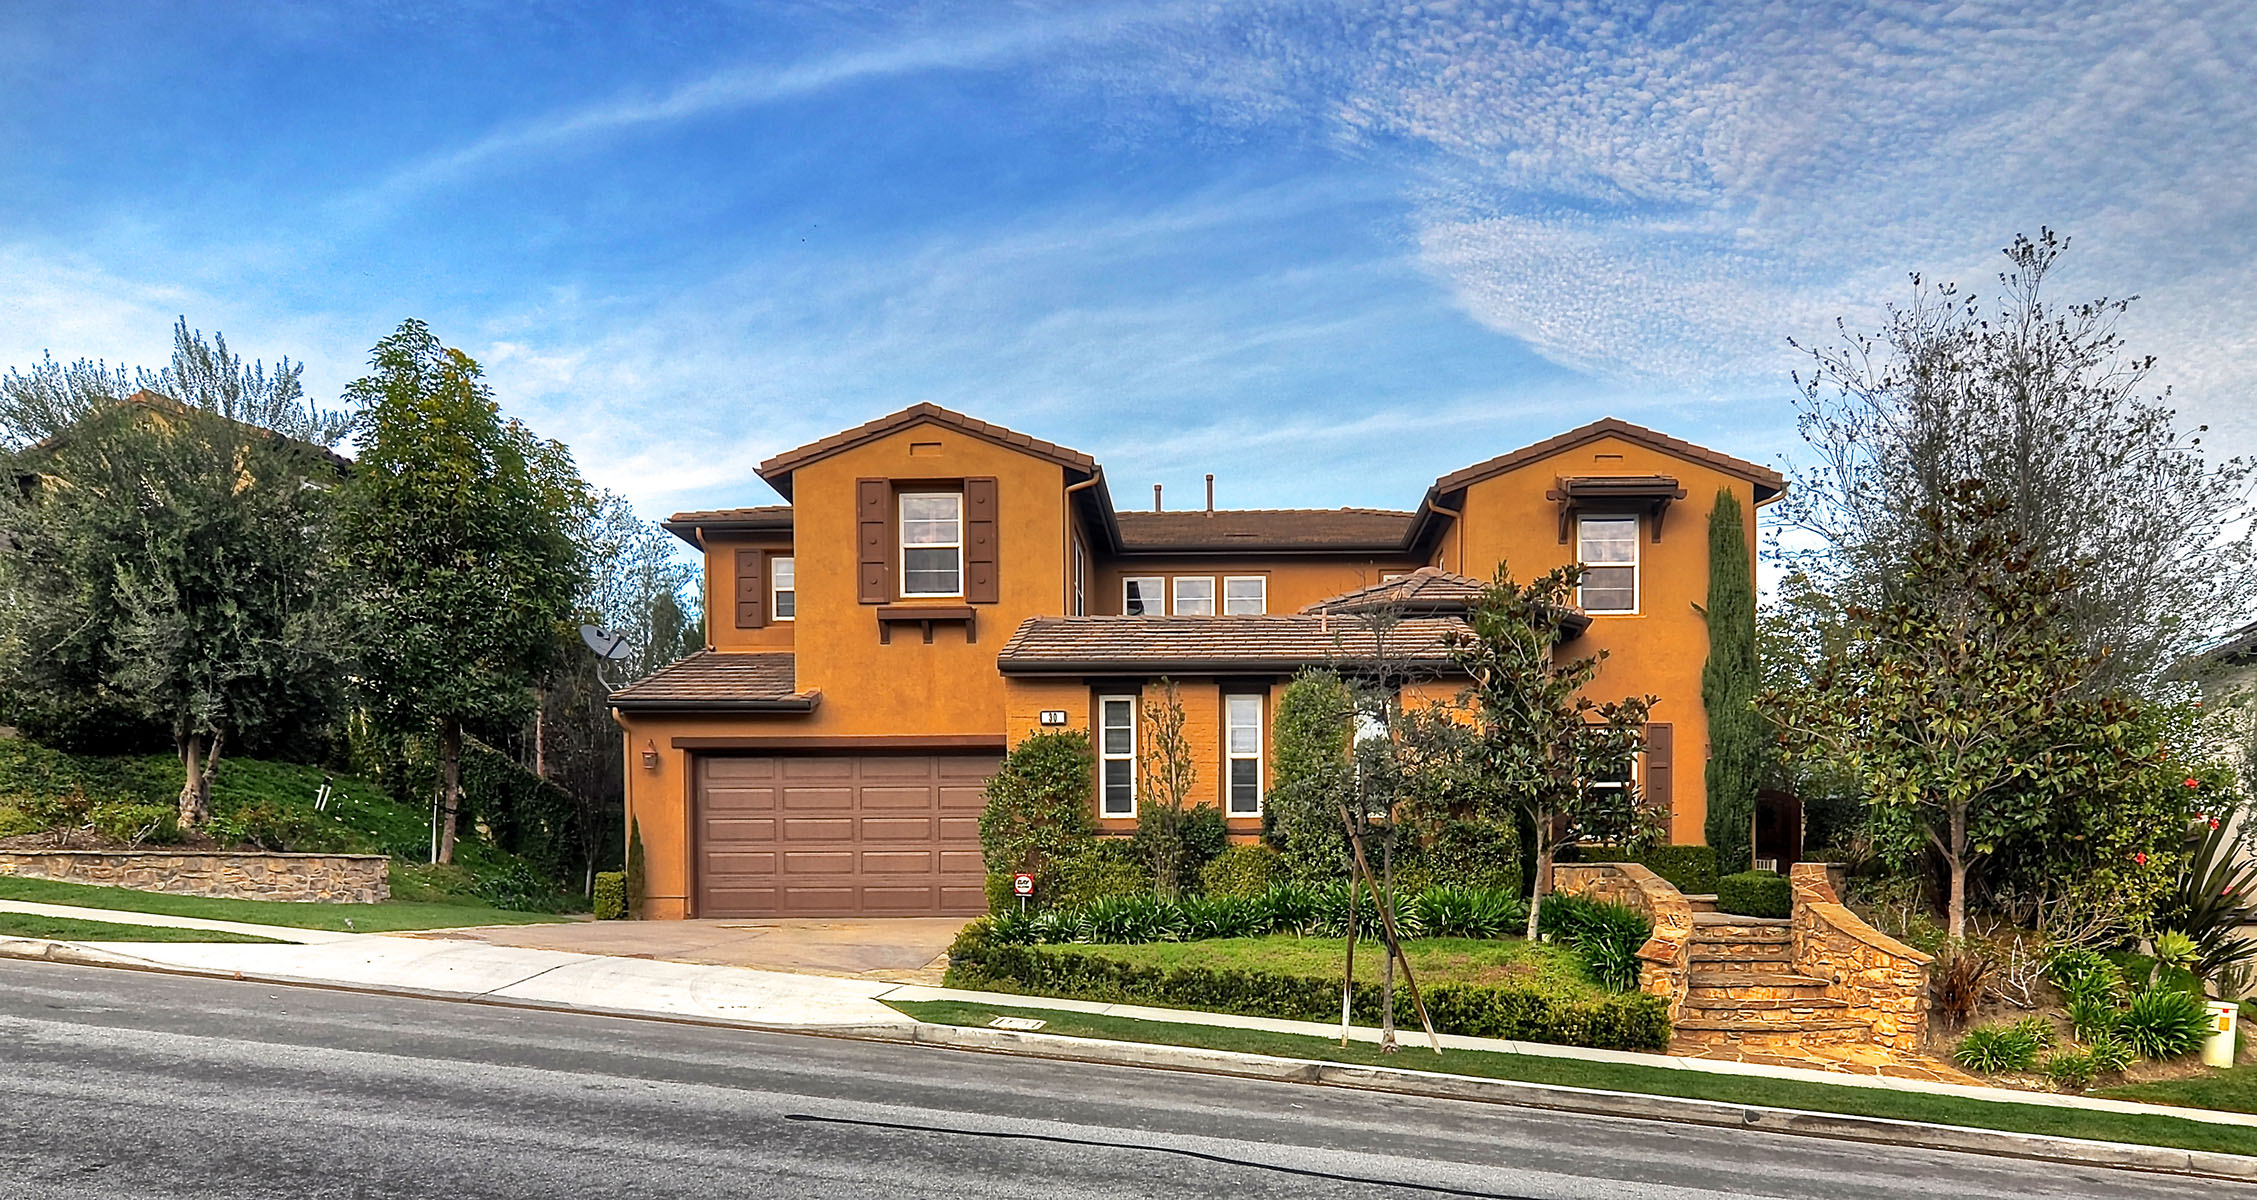 Single Family Home for Sale at 30 Via Divertirse San Clemente, California 92673 United States